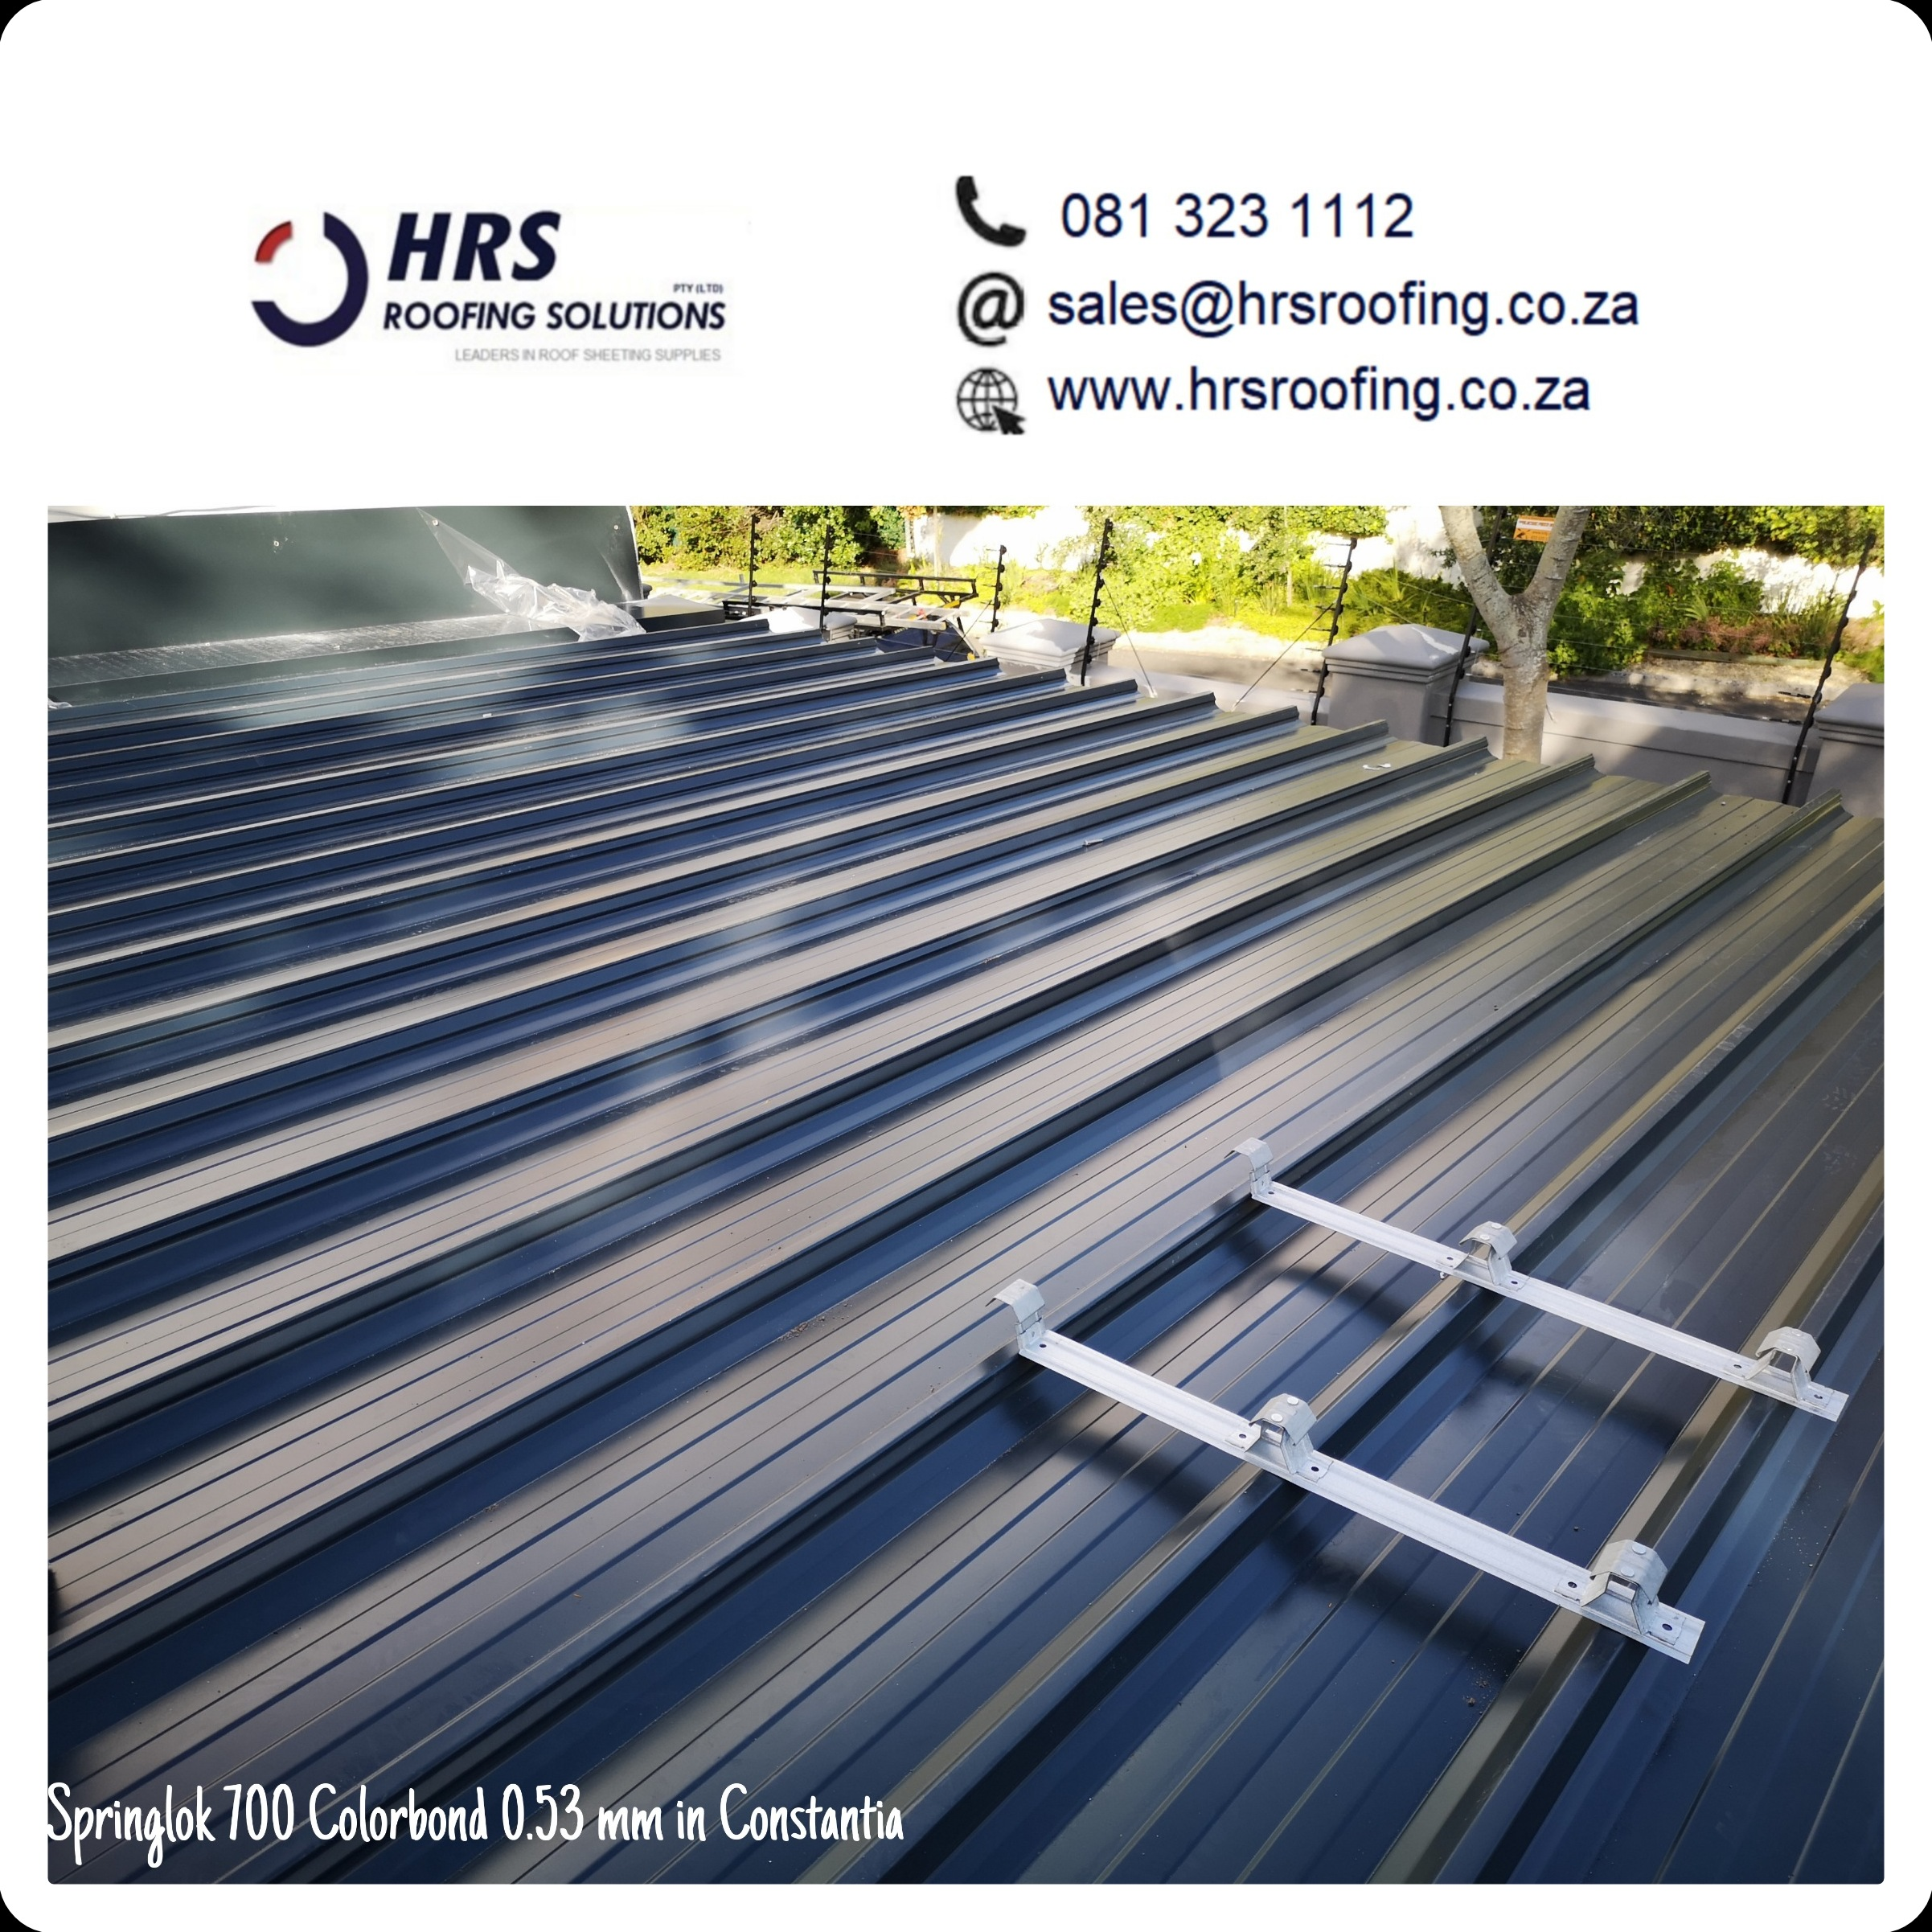 hrs roofing solutions roofing contractors cape Town roofing - Roofing Gallery